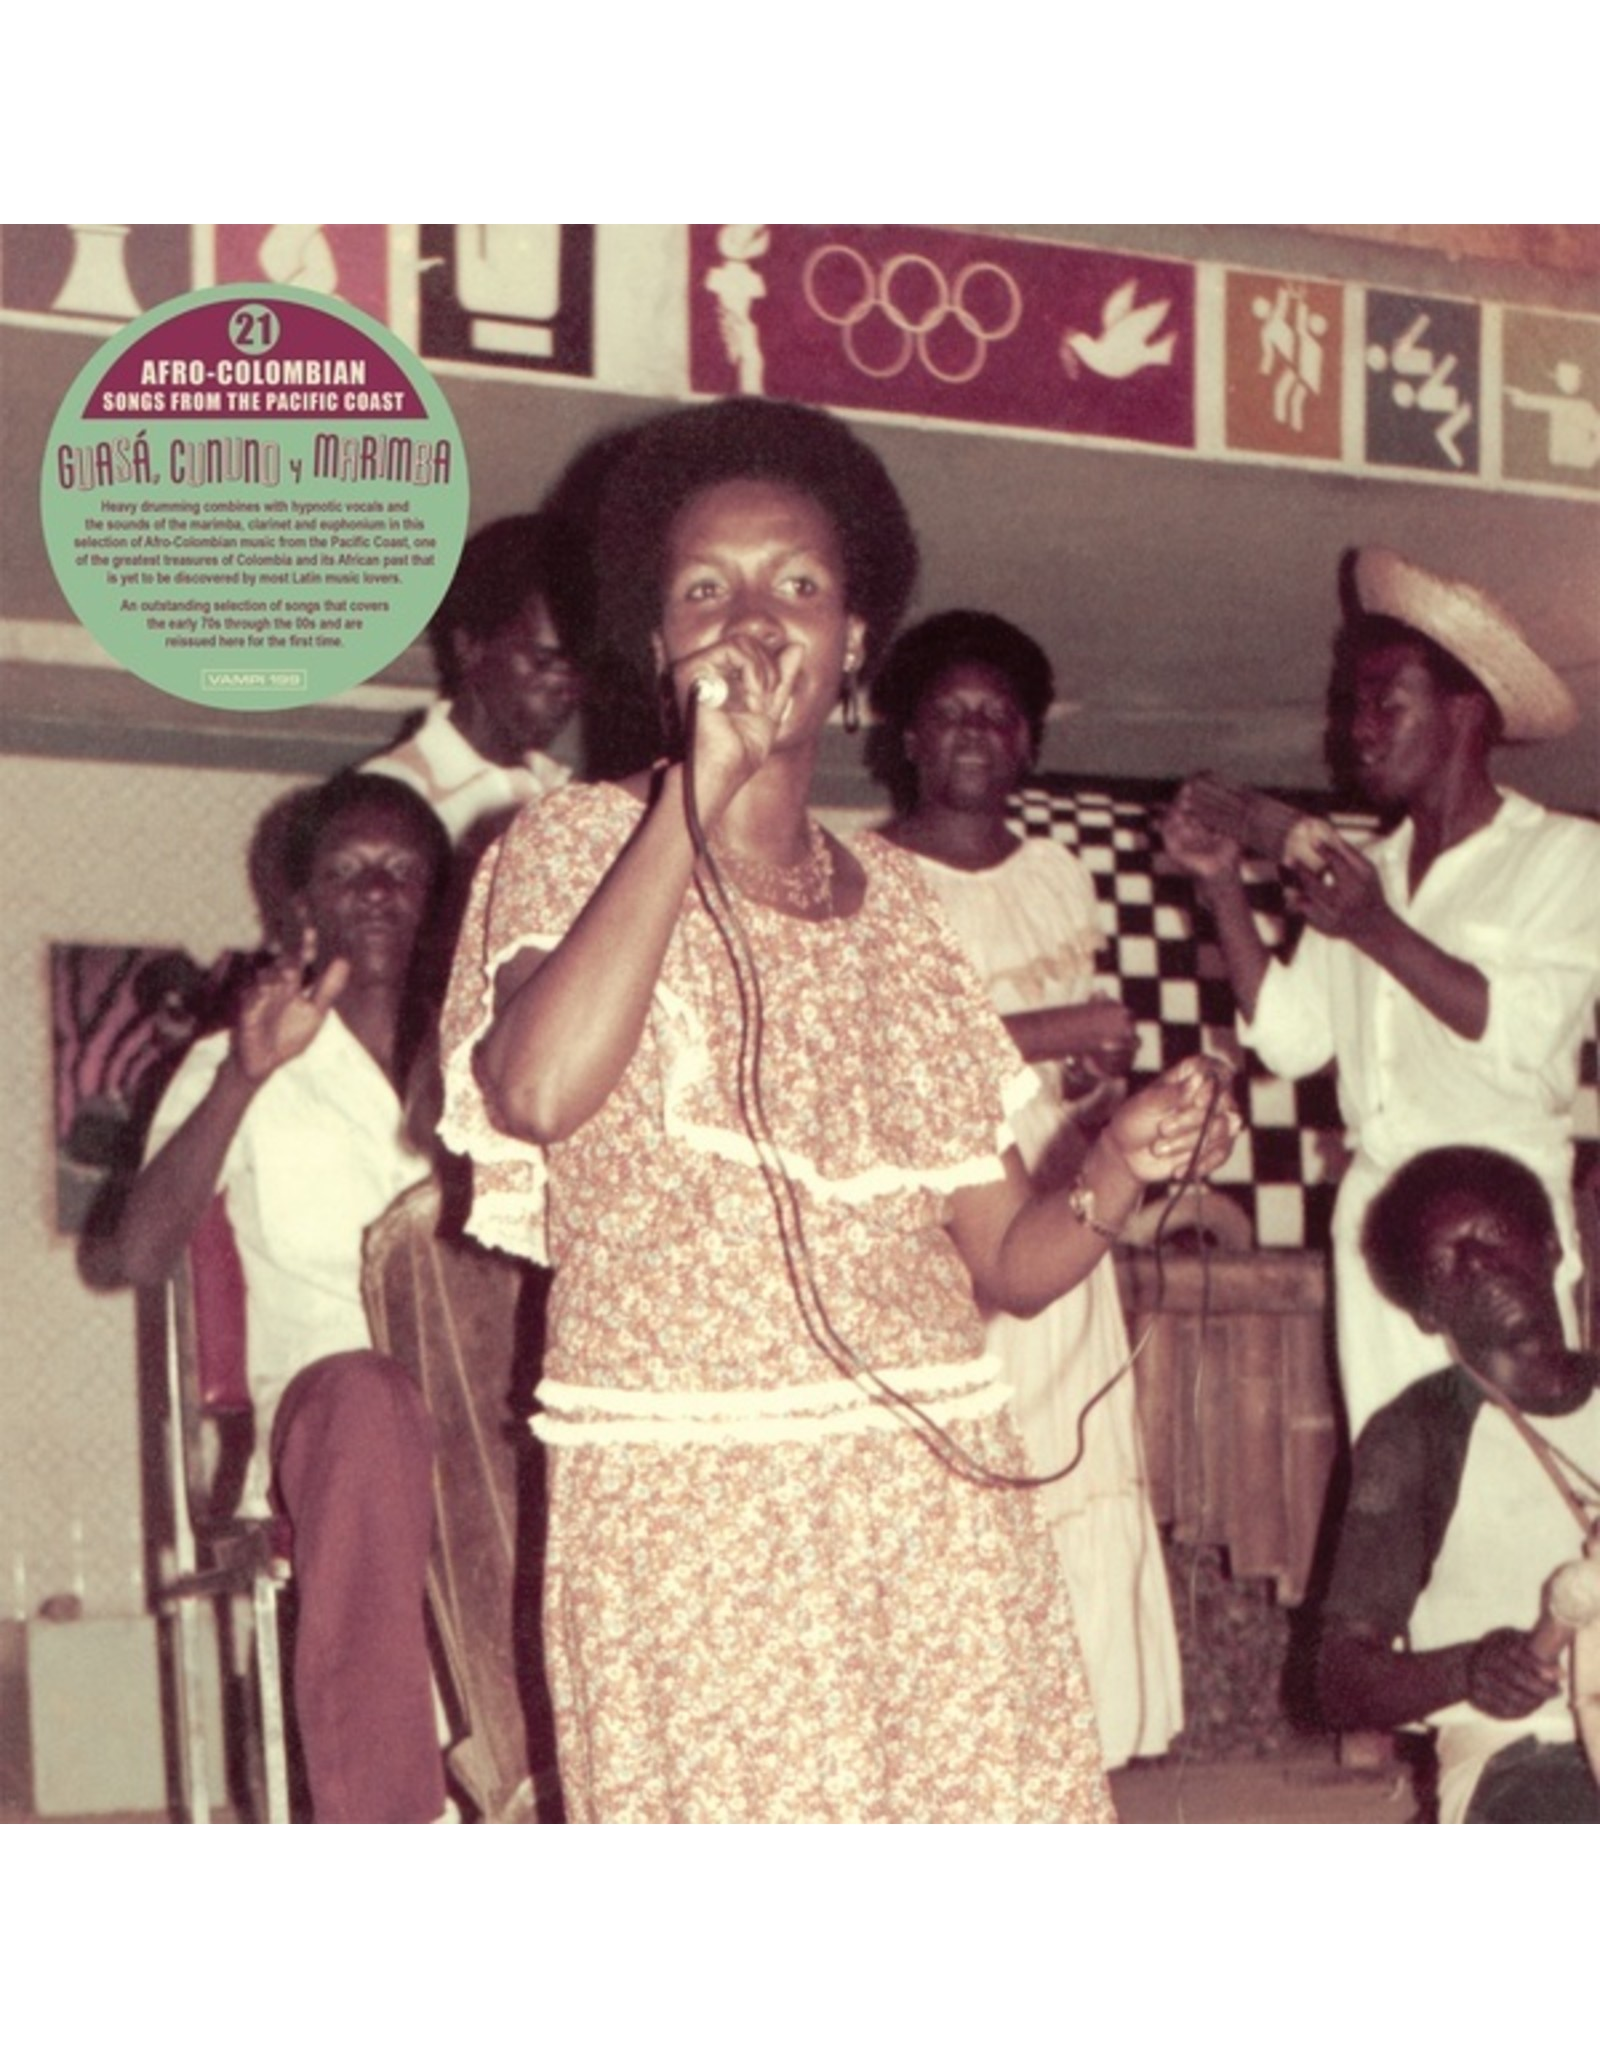 New Vinyl Various - Guasa, Cununo Y Marimba: Afro-Colombian Music From The Pacific Coast 2LP